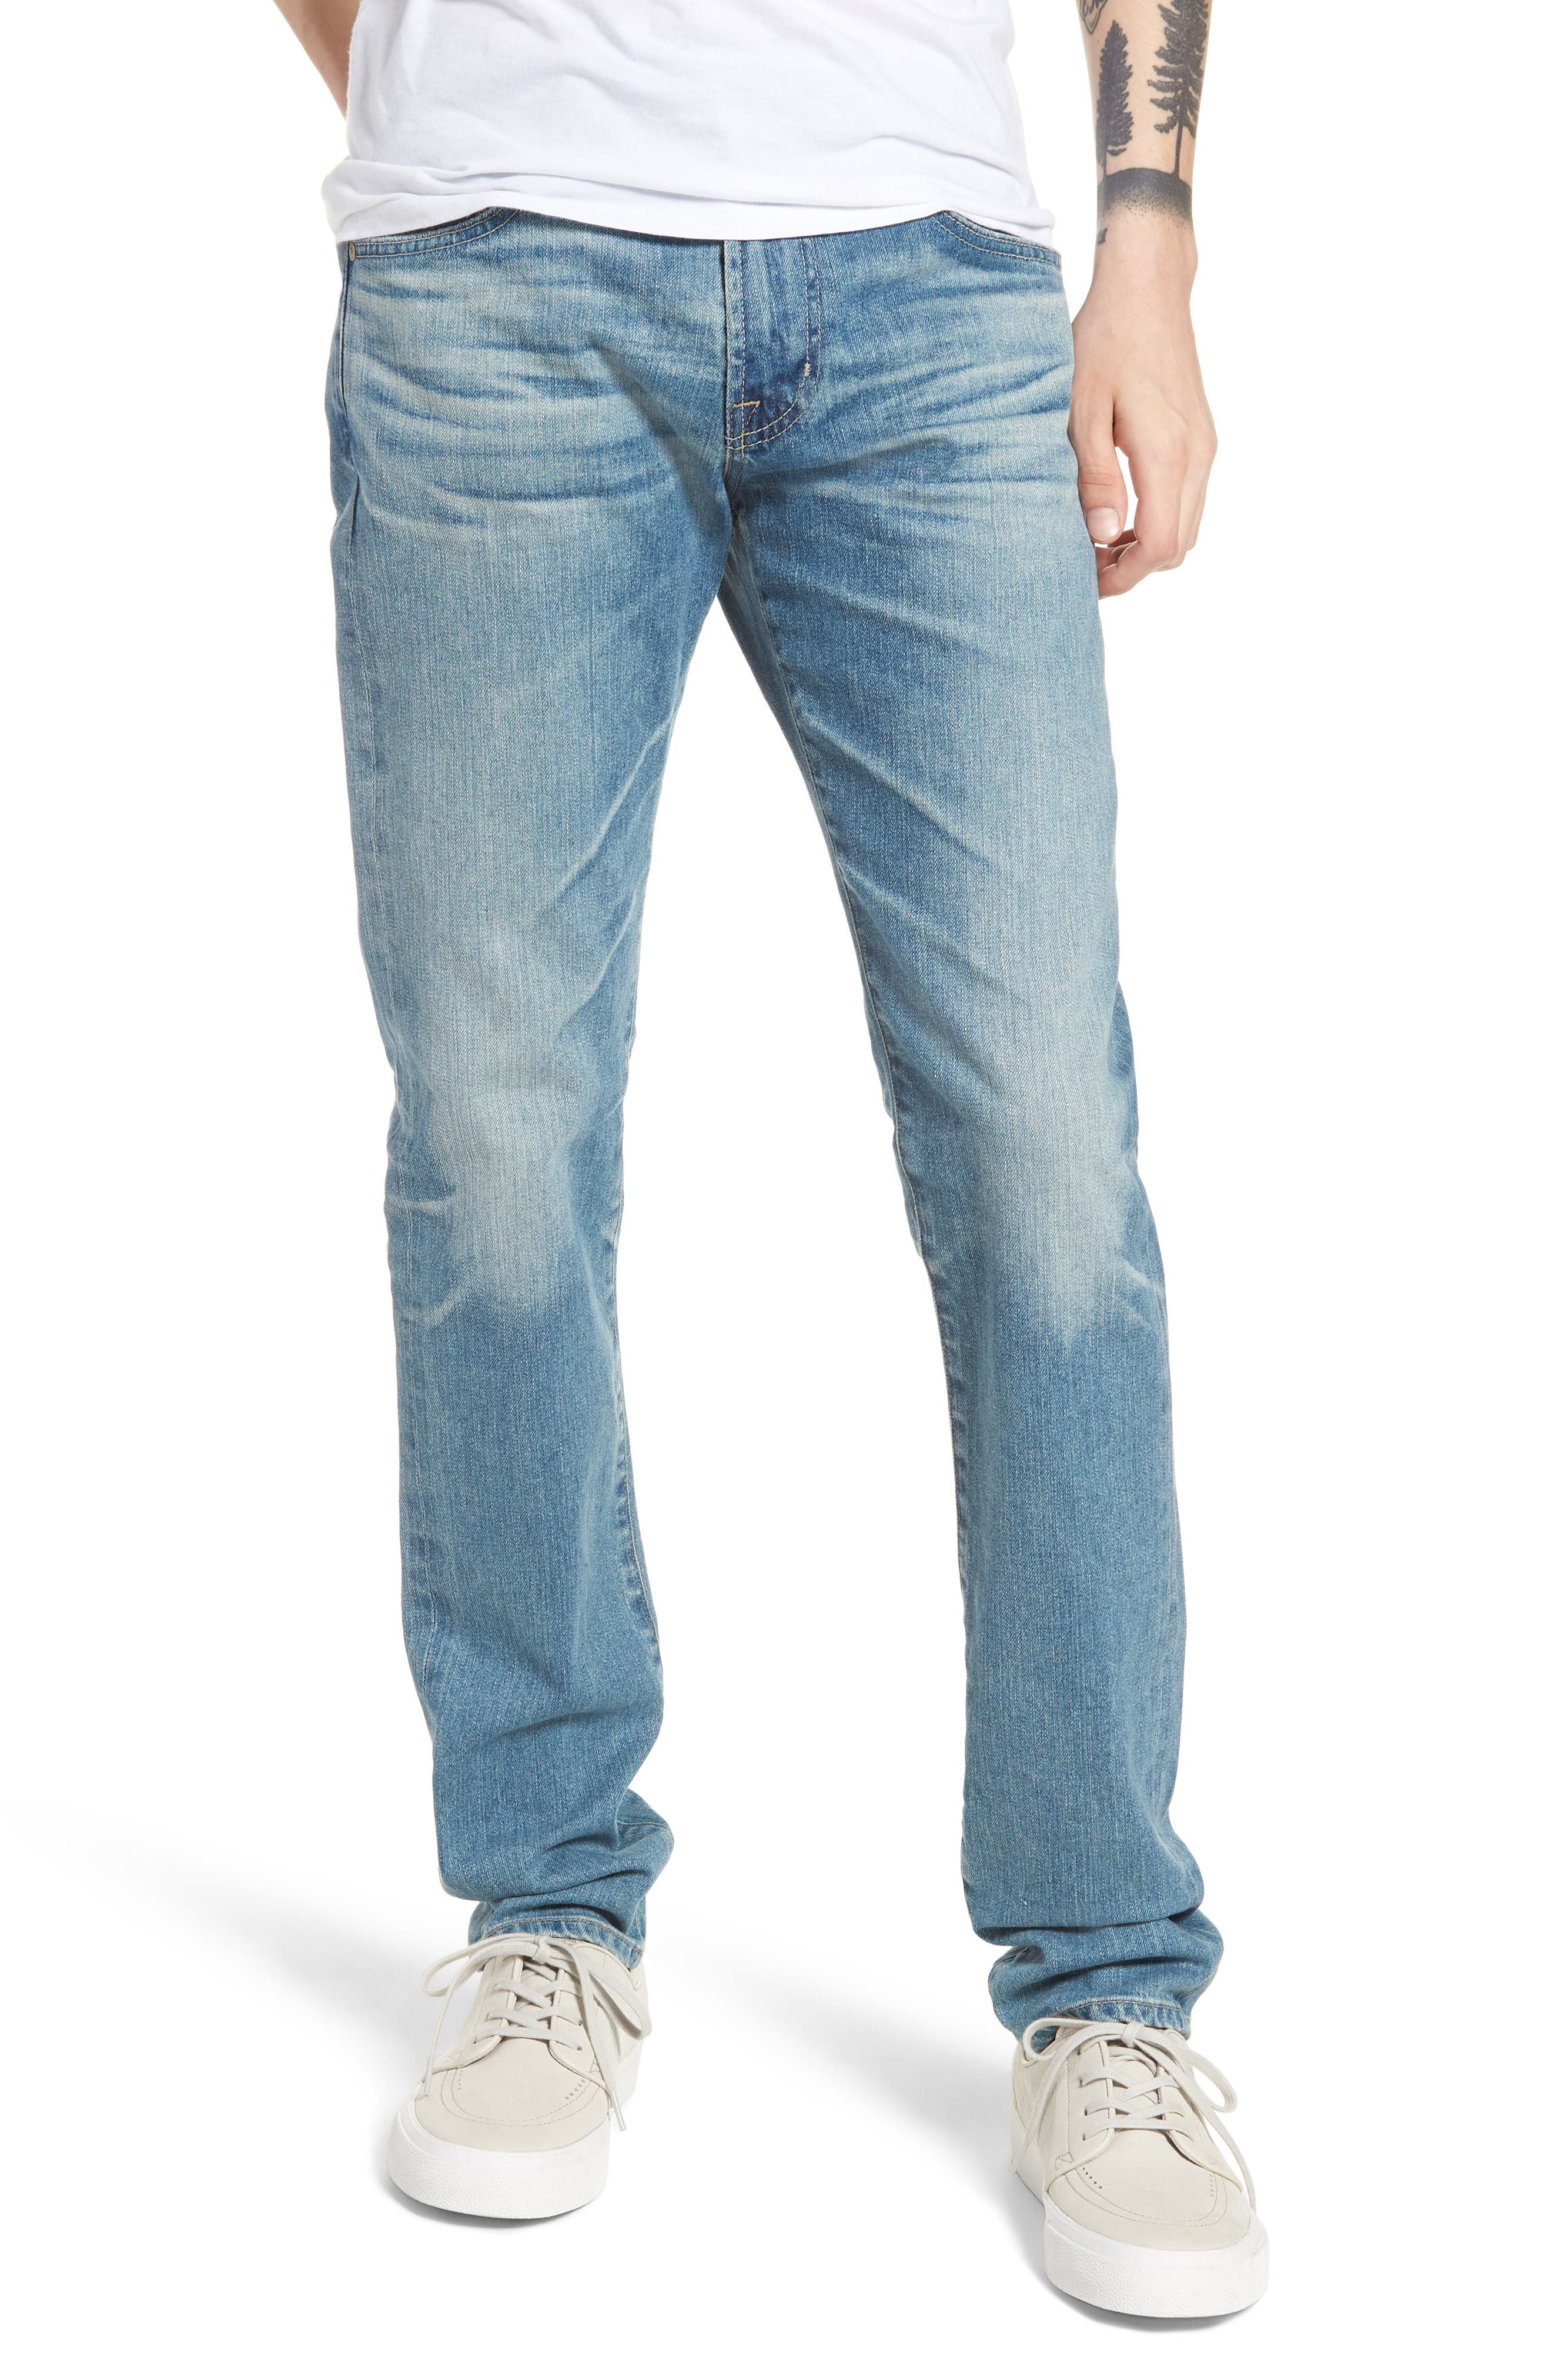 Dylan Skinny Fit Jeans,                             Main thumbnail 1, color,                             424